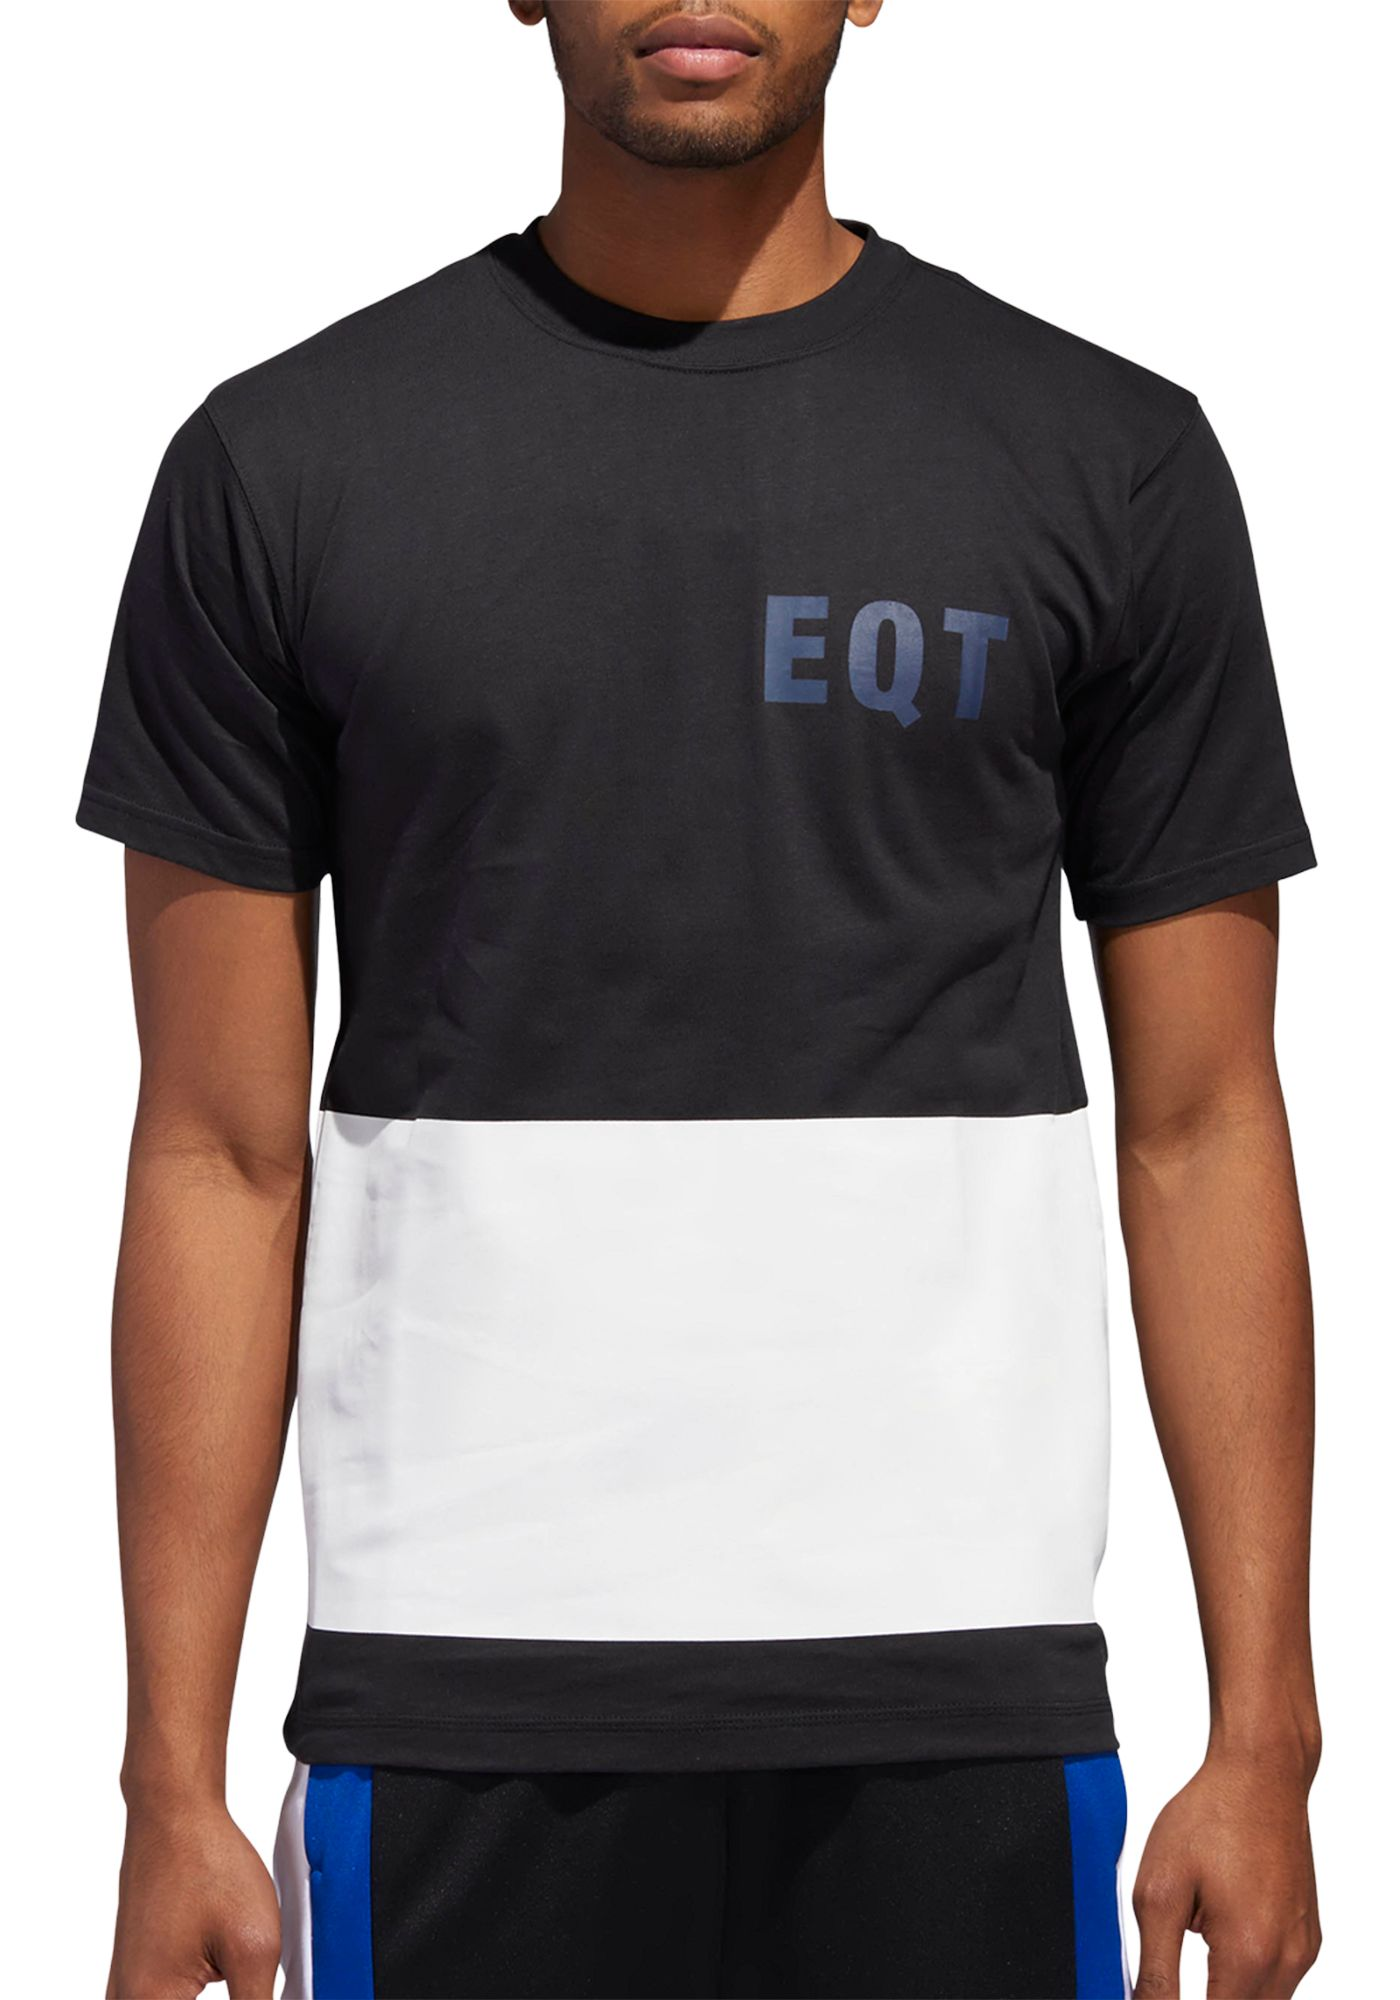 adidas Originals Men's EQT Graphic T-Shirt